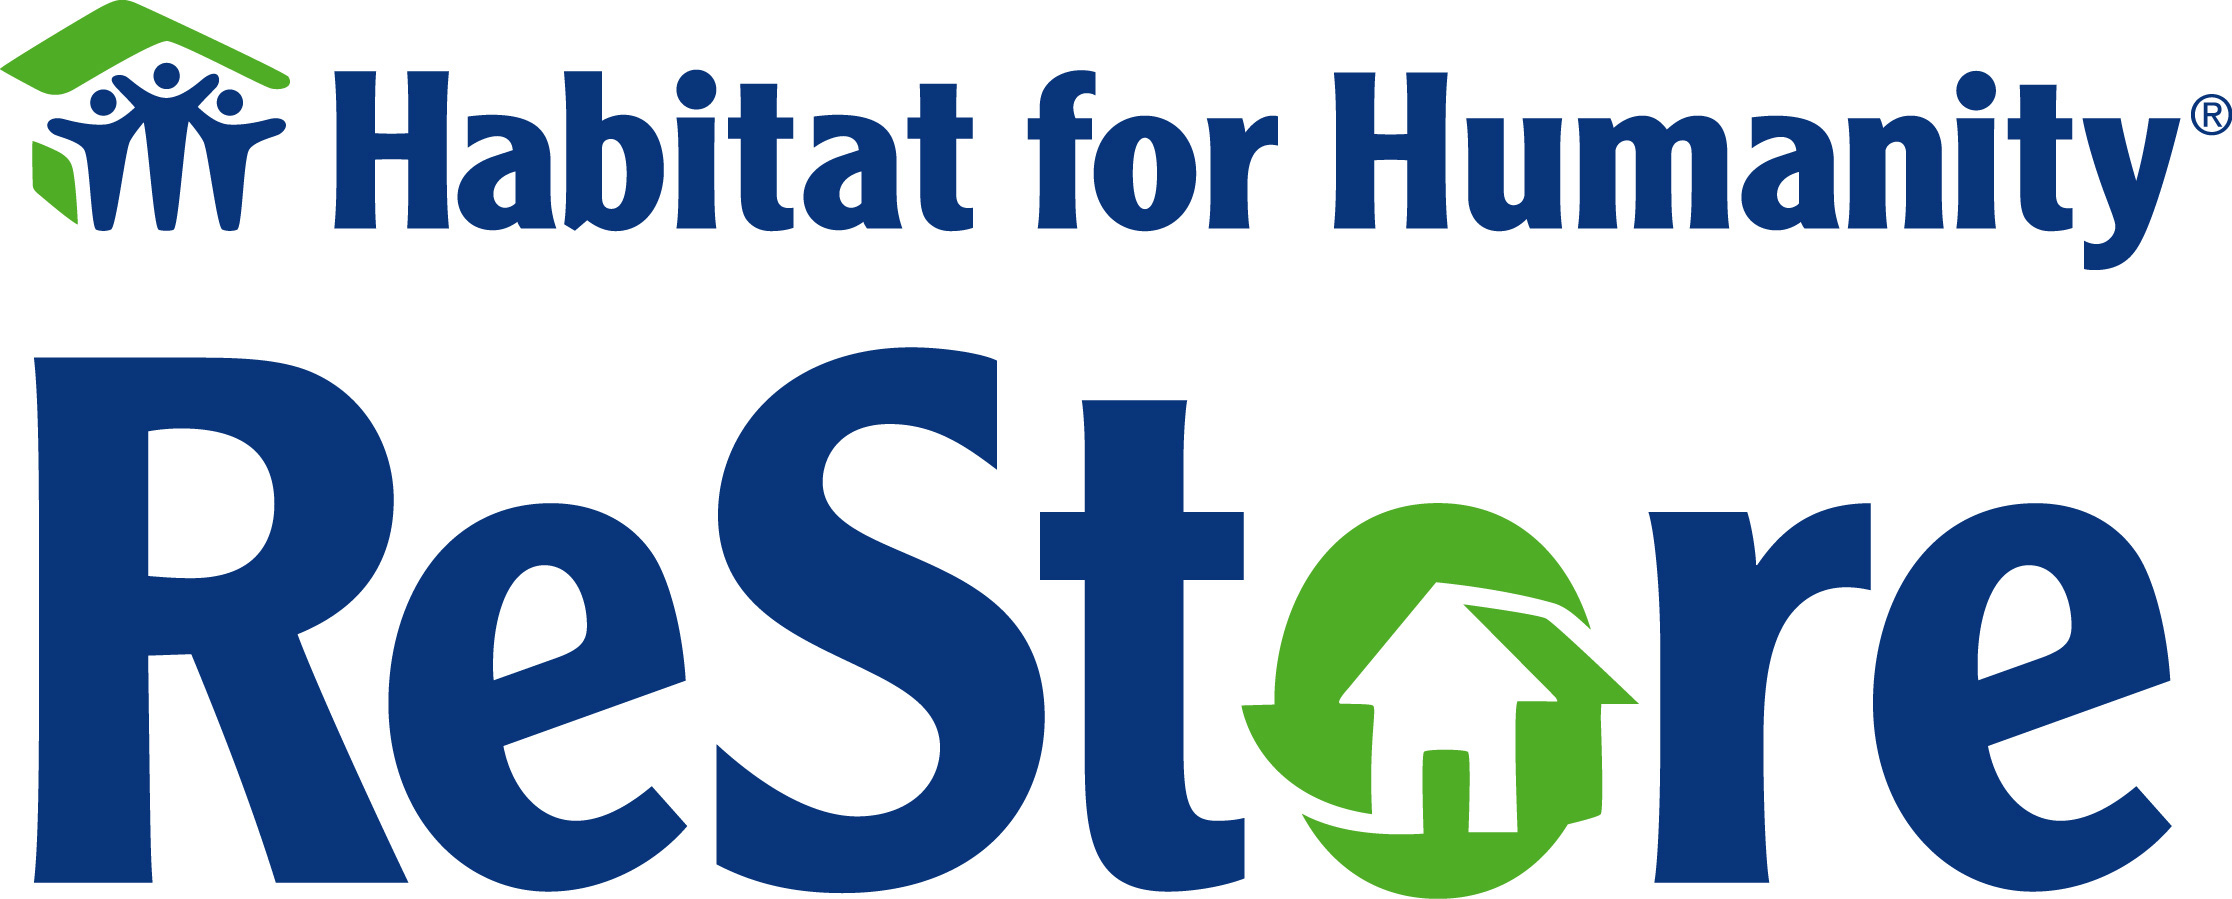 Habitat for Humanity | Restore